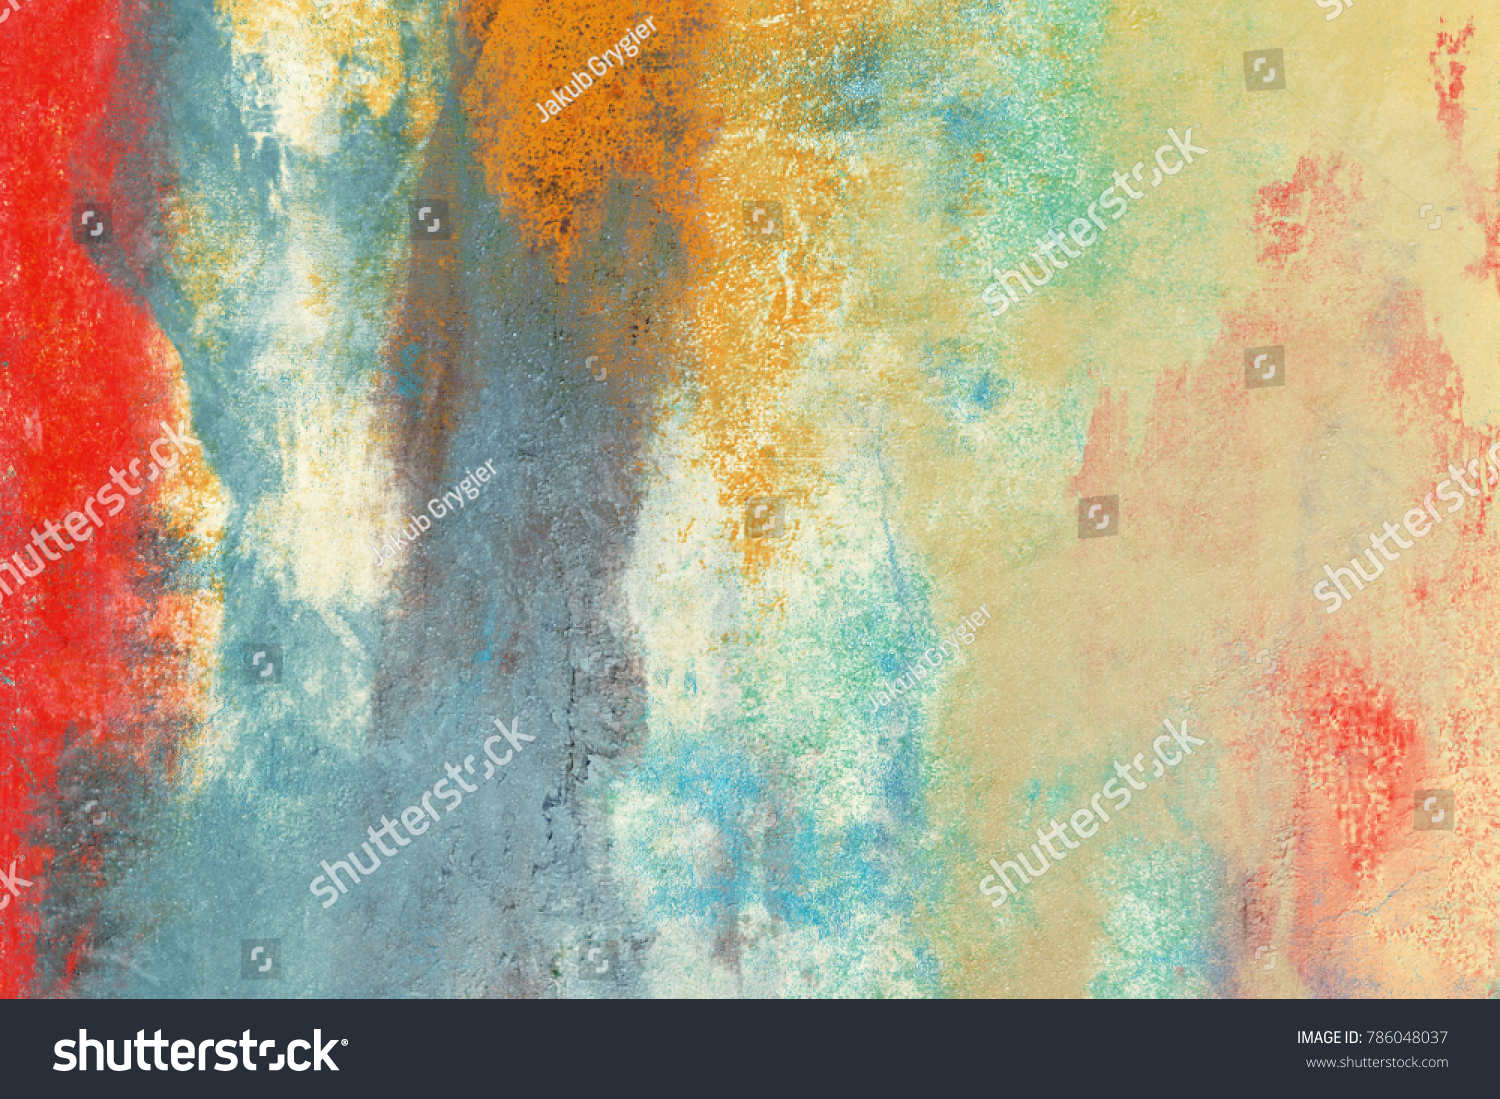 Wall Painting Handmade Abstract Art Texture Stock Illustration ...